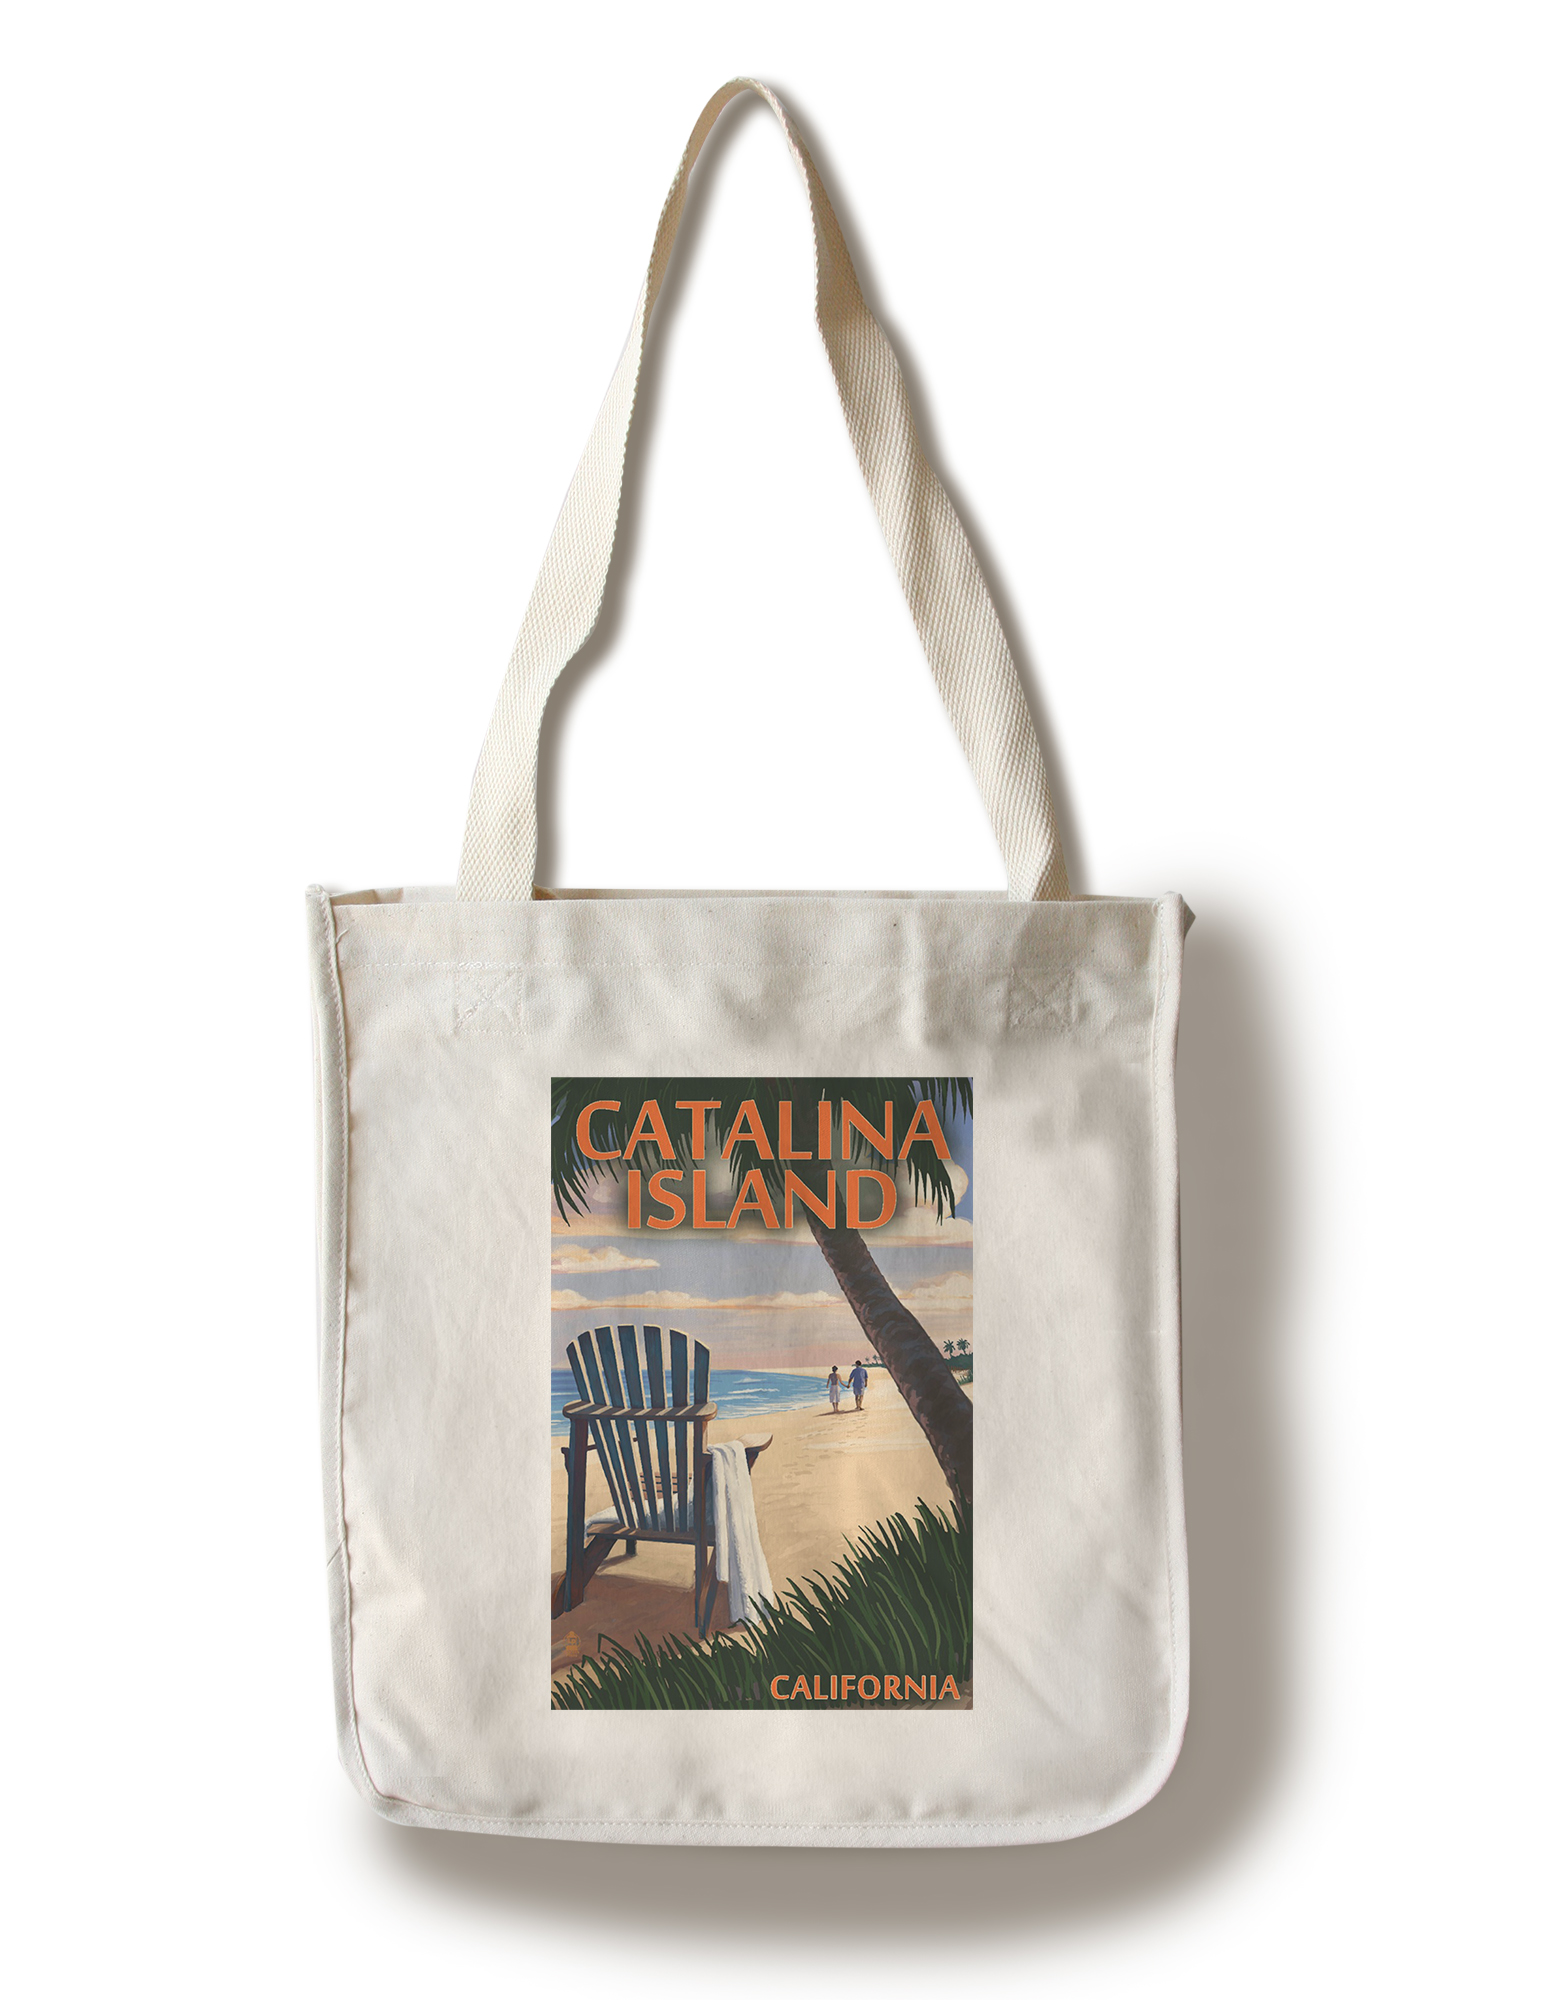 Catalina Island, California Adirondack Chairs & Sunset Lantern Press Artwork (100% Cotton Tote Bag Reusable) by Lantern Press